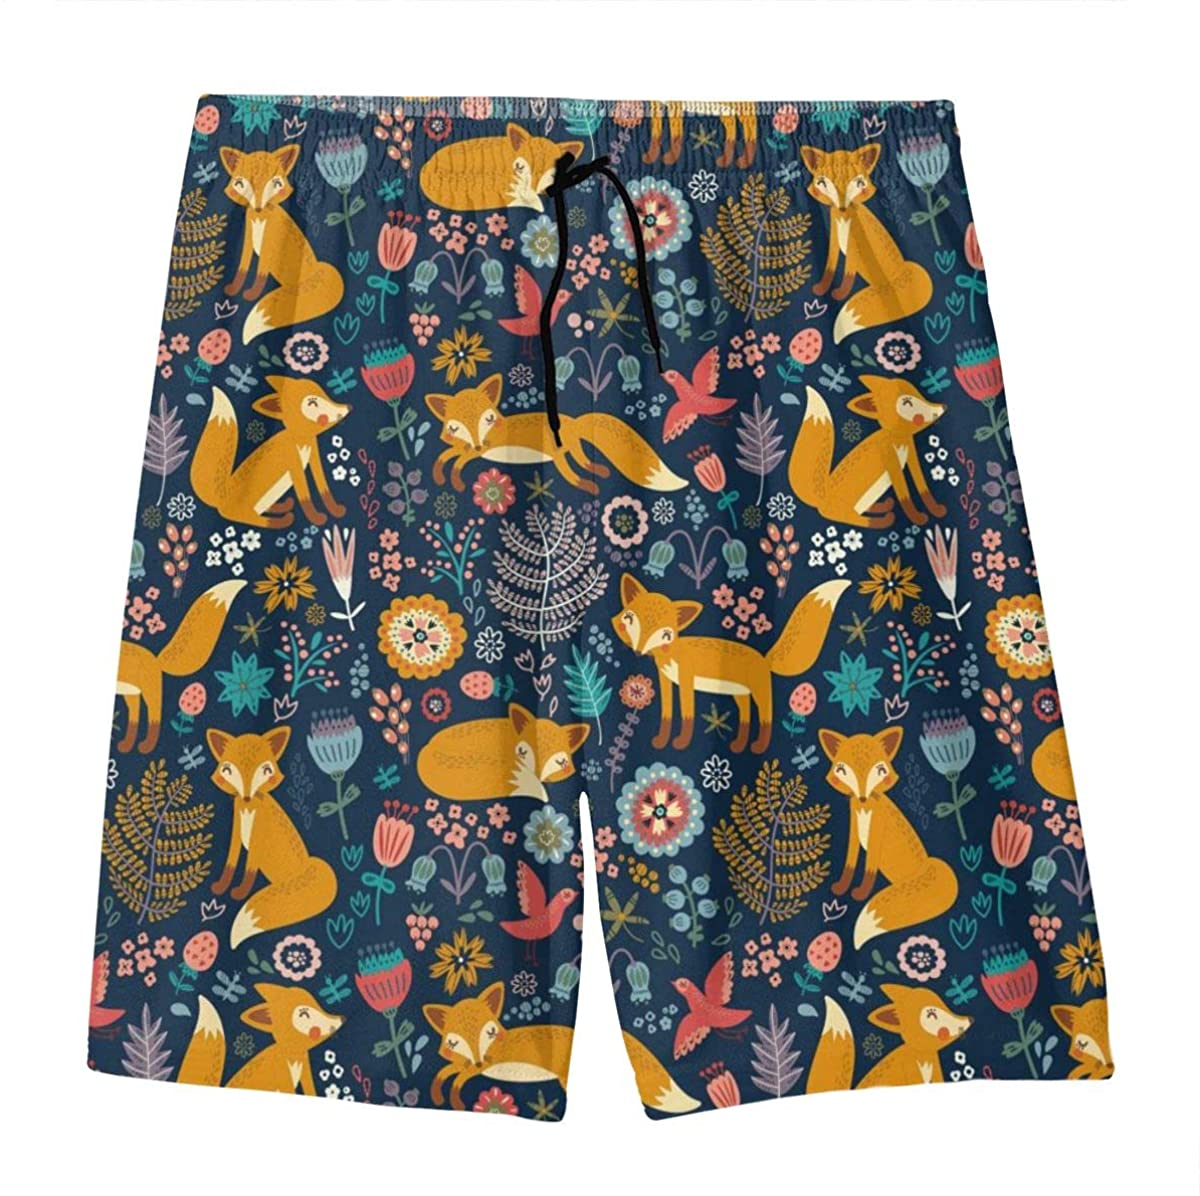 Fox Floral Pattern Teens Swim Trunks Beach Shorts Surfing Board Quick Dry Bathing Suit